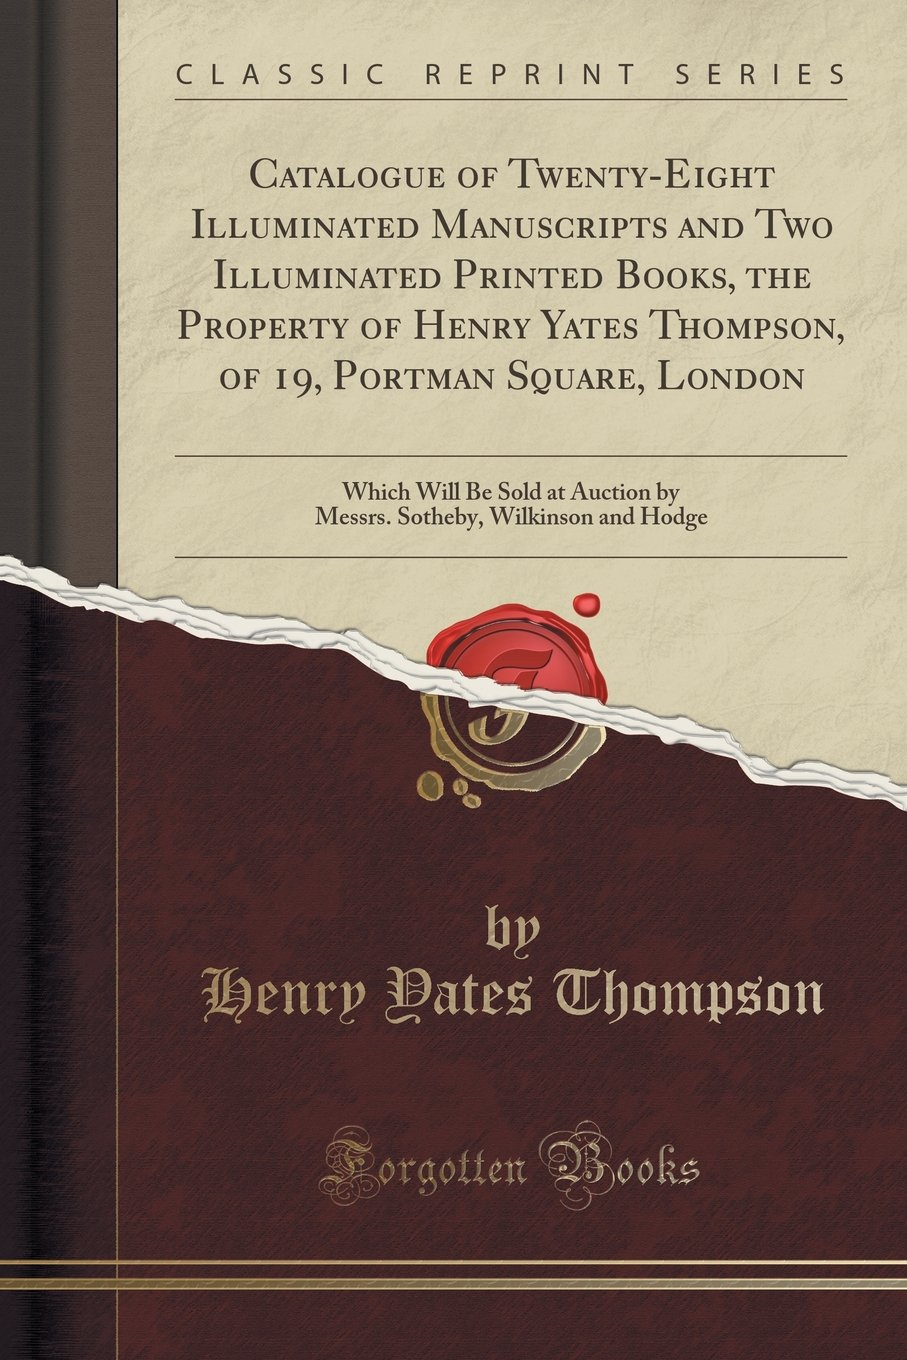 Catalogue of Twenty-Eight Illuminated Manuscripts and Two Illuminated Printed Books, the Property of Henry Yates Thompson, of 19, Portman Square, ... Wilkinson and Hodge (Classic Reprint) ebook